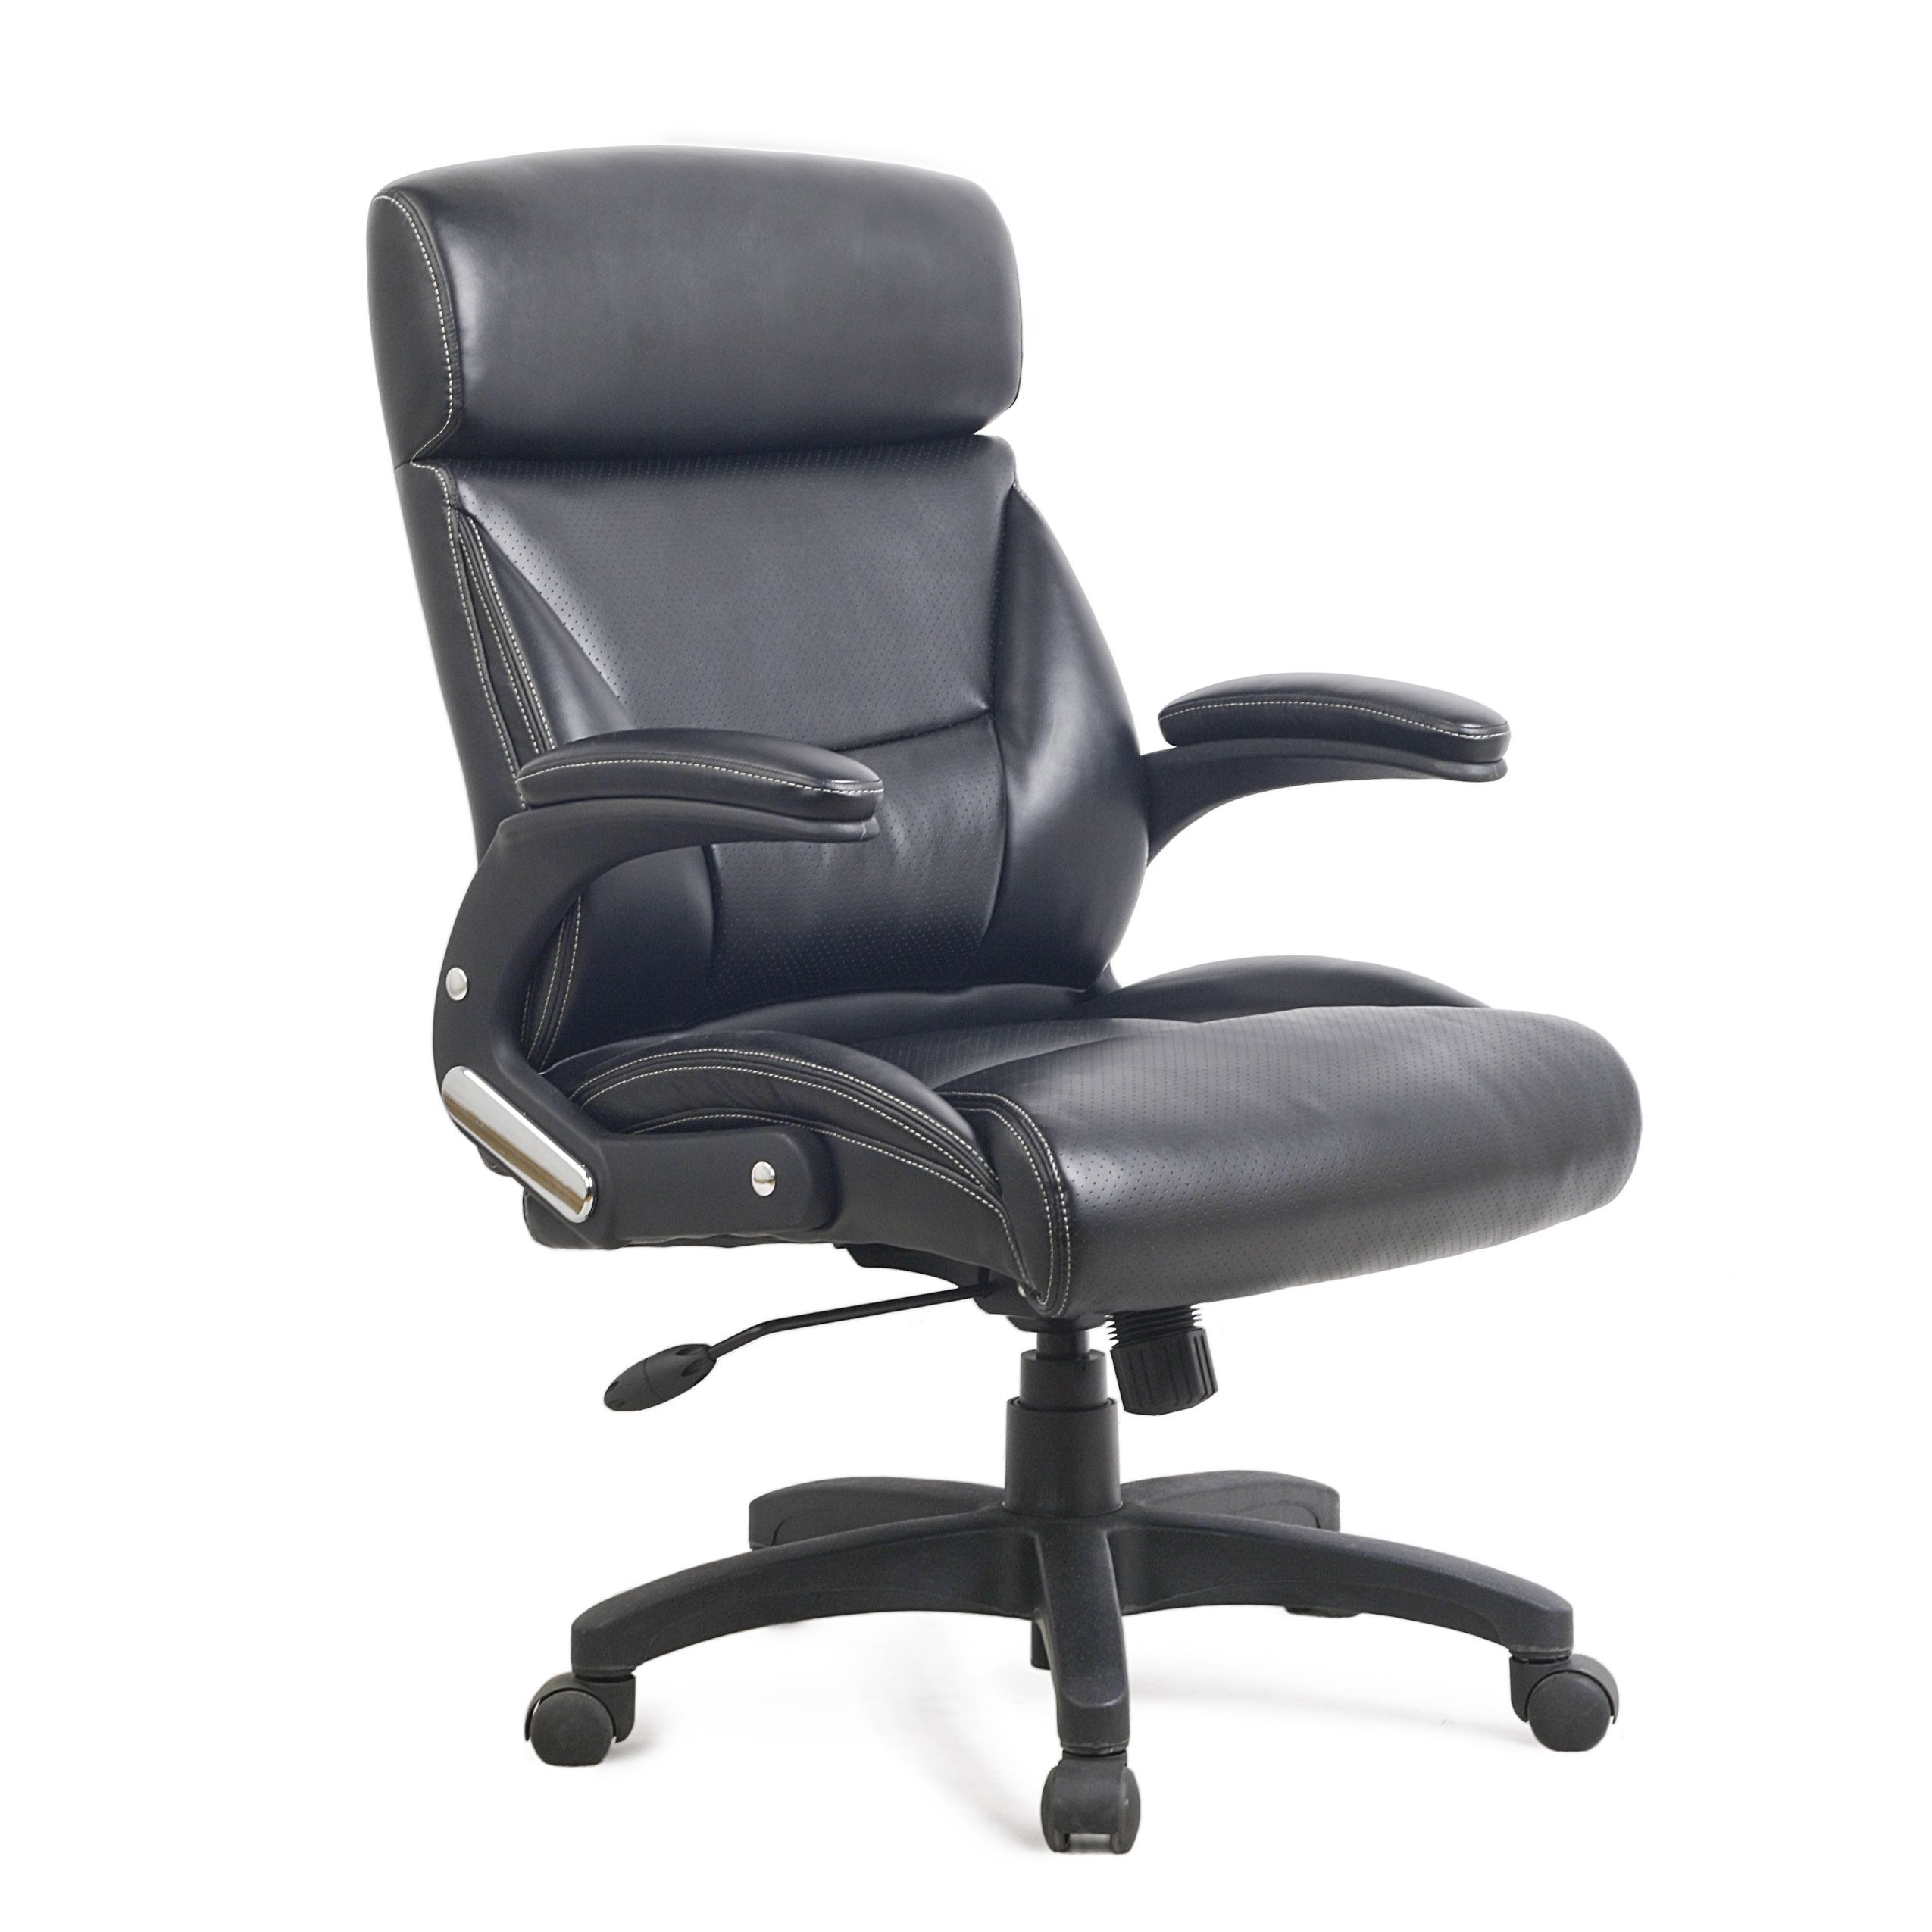 CorLiving Black Leatherette Managerial Office Chair